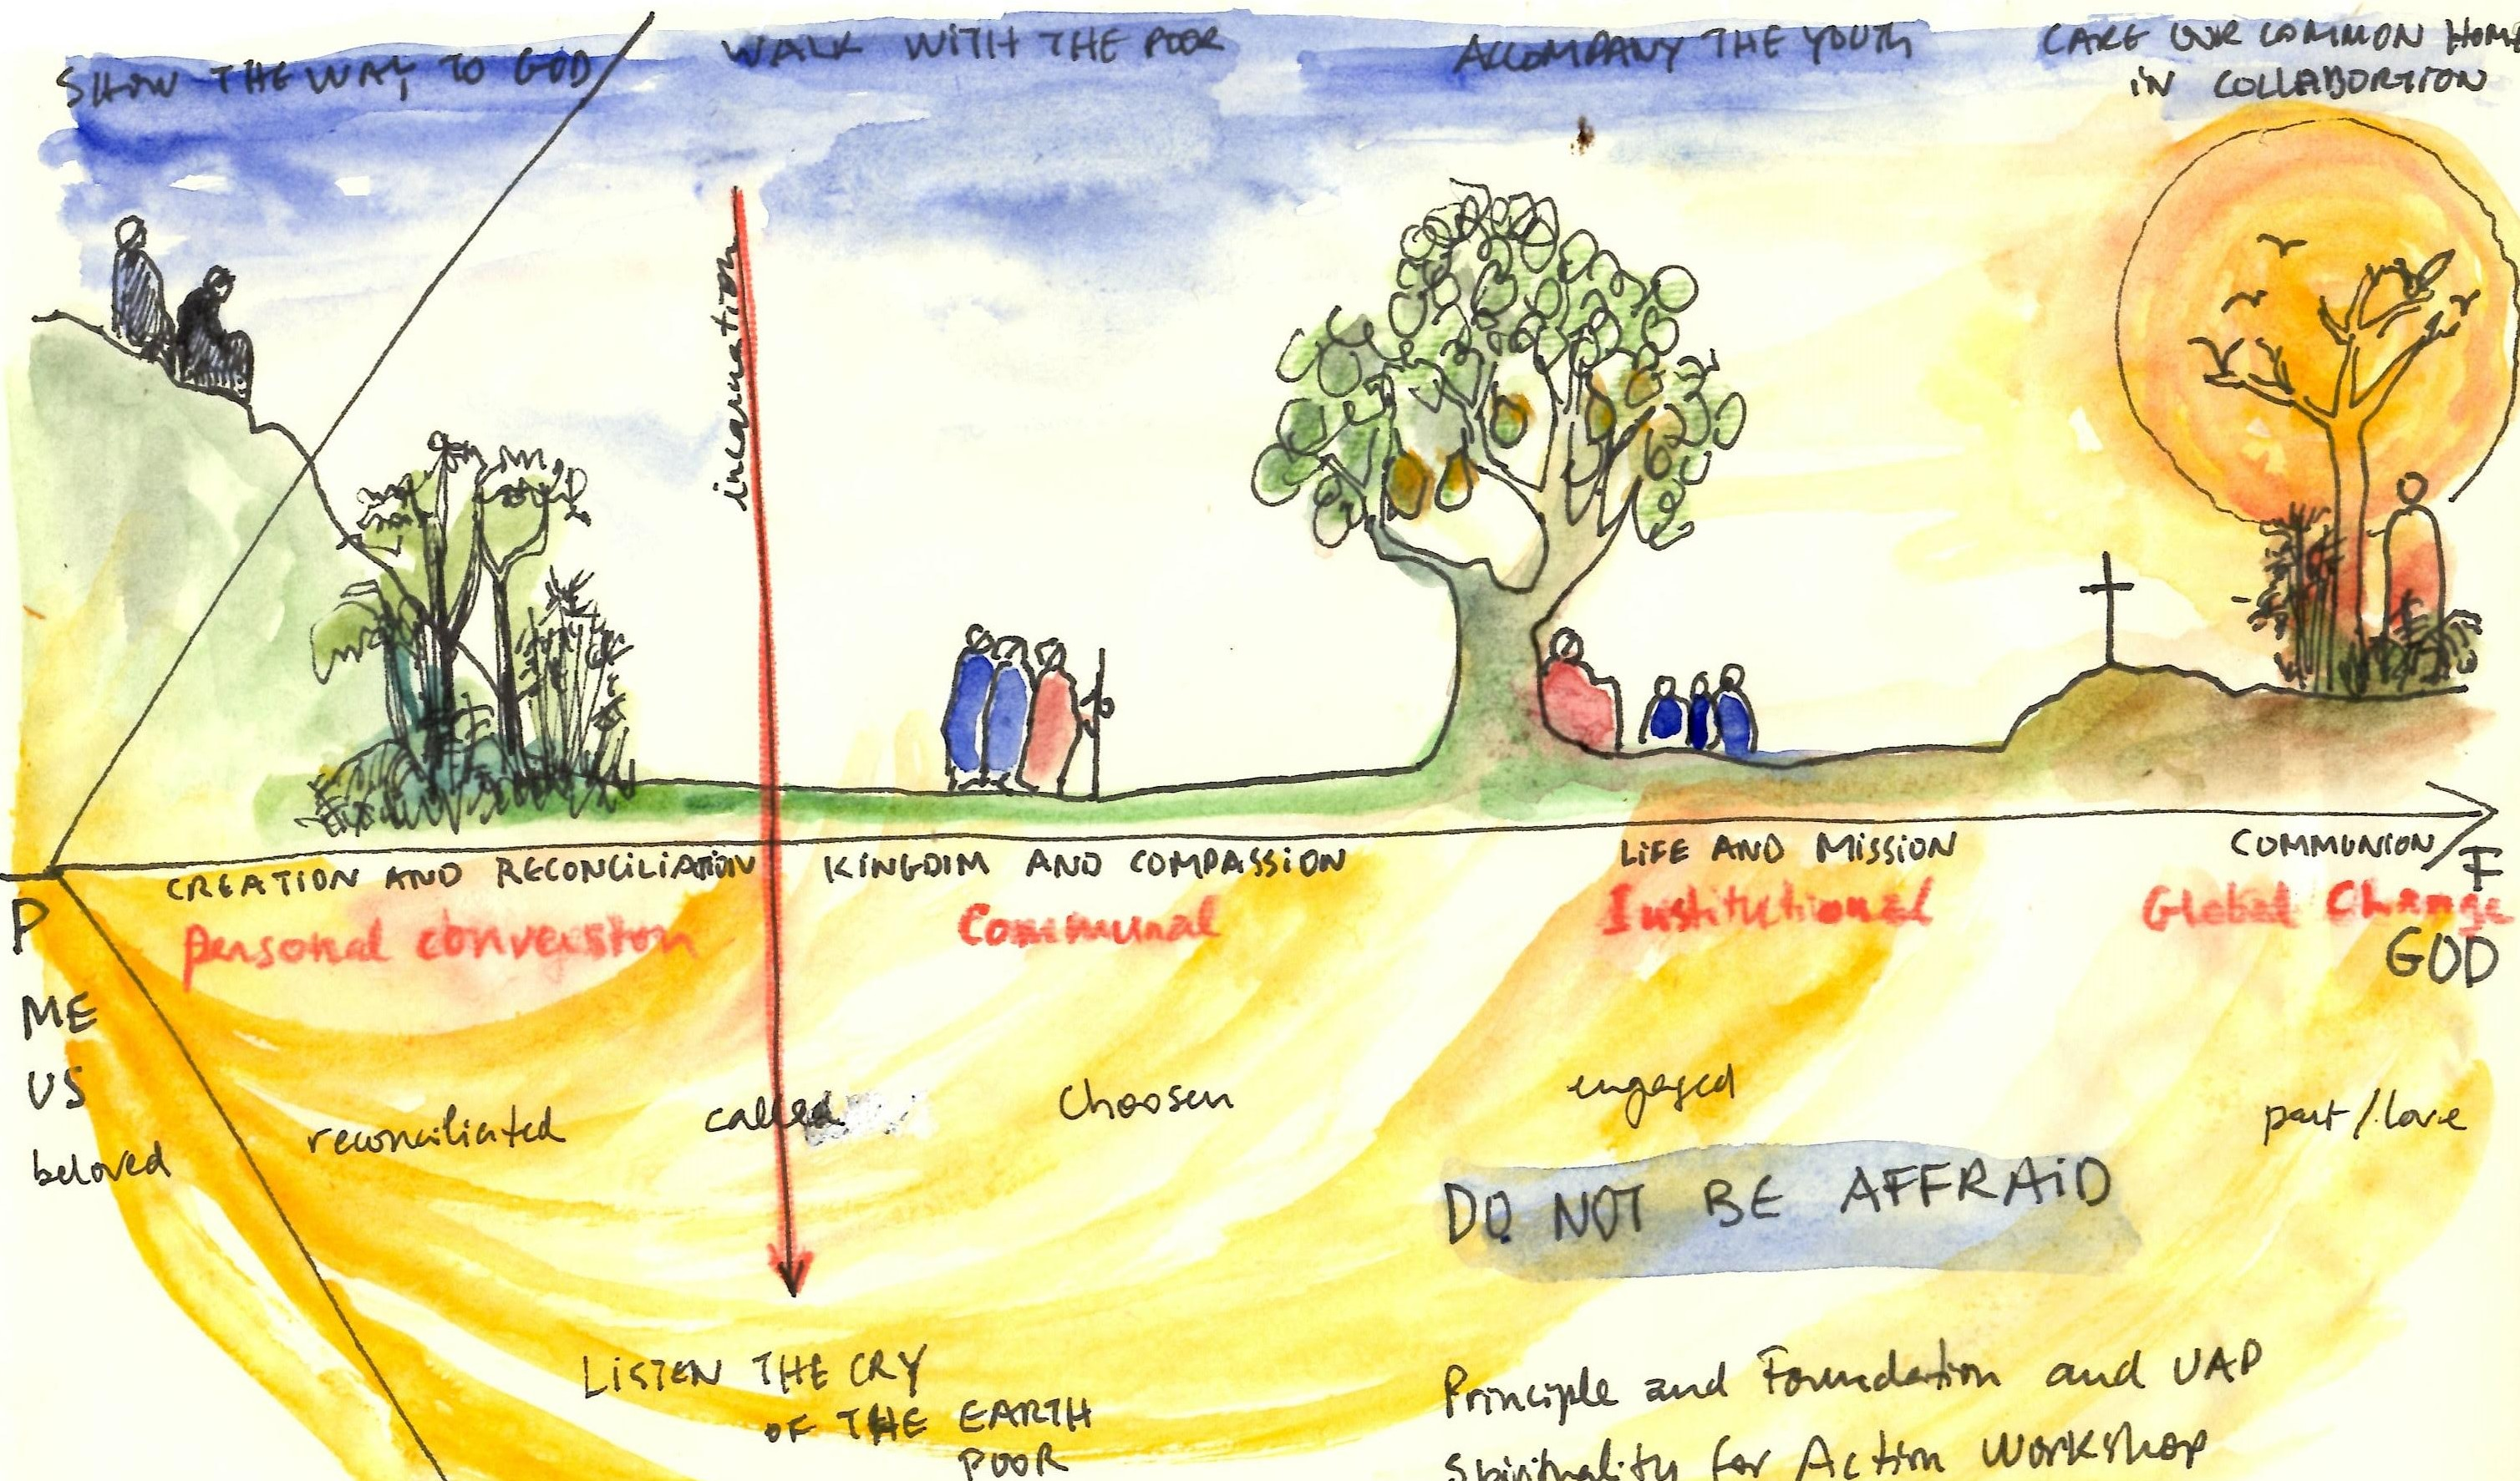 Spirituality for action in two houses caring for our common home